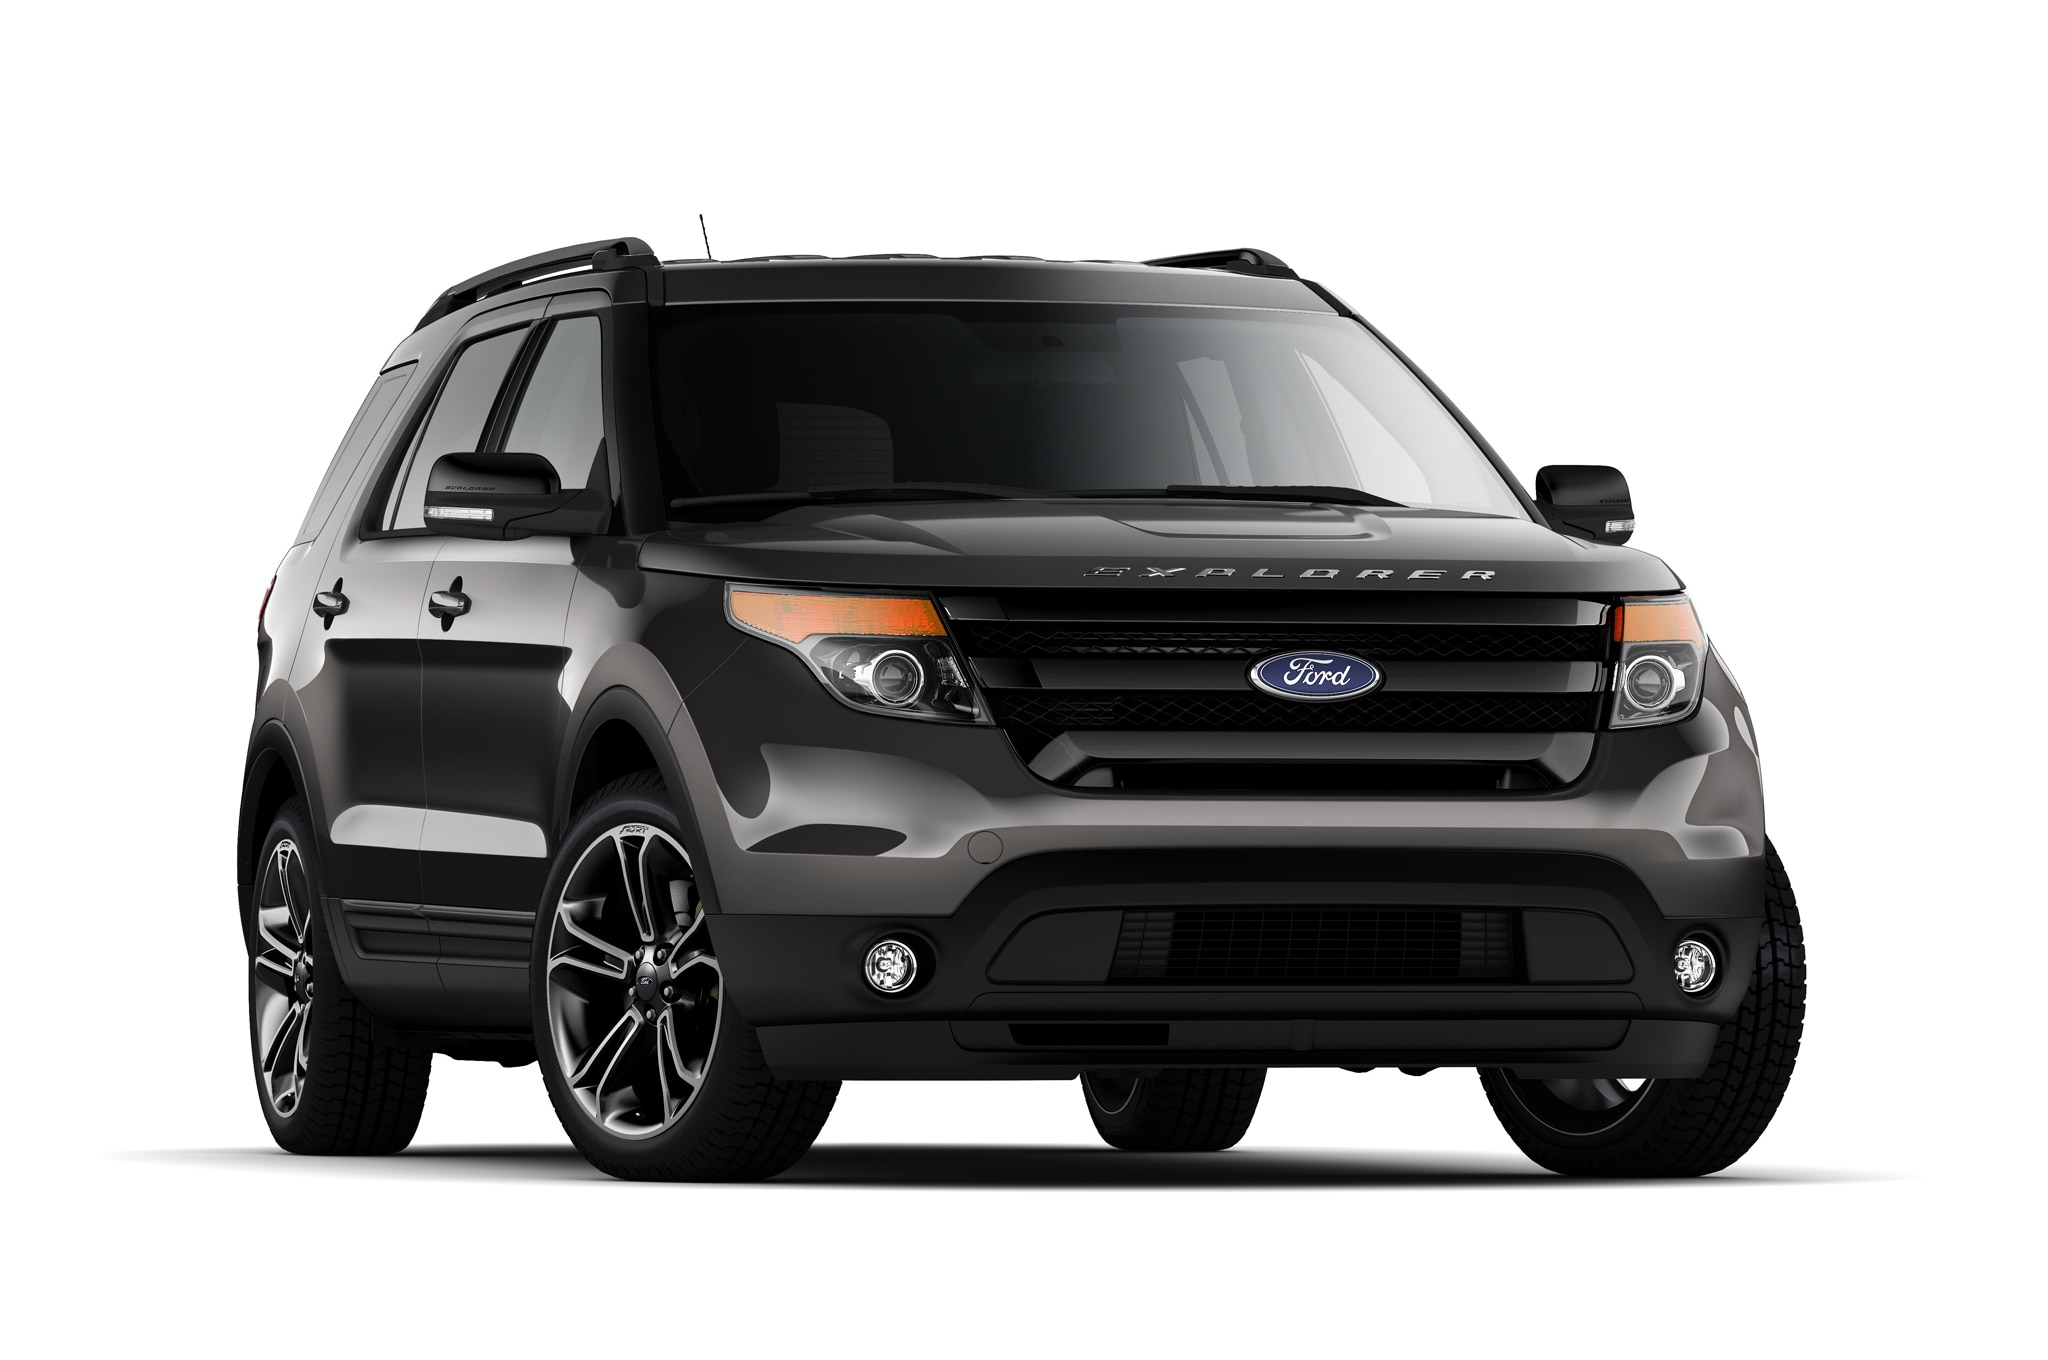 ford explorer prototype shows off revised front and rear. Black Bedroom Furniture Sets. Home Design Ideas